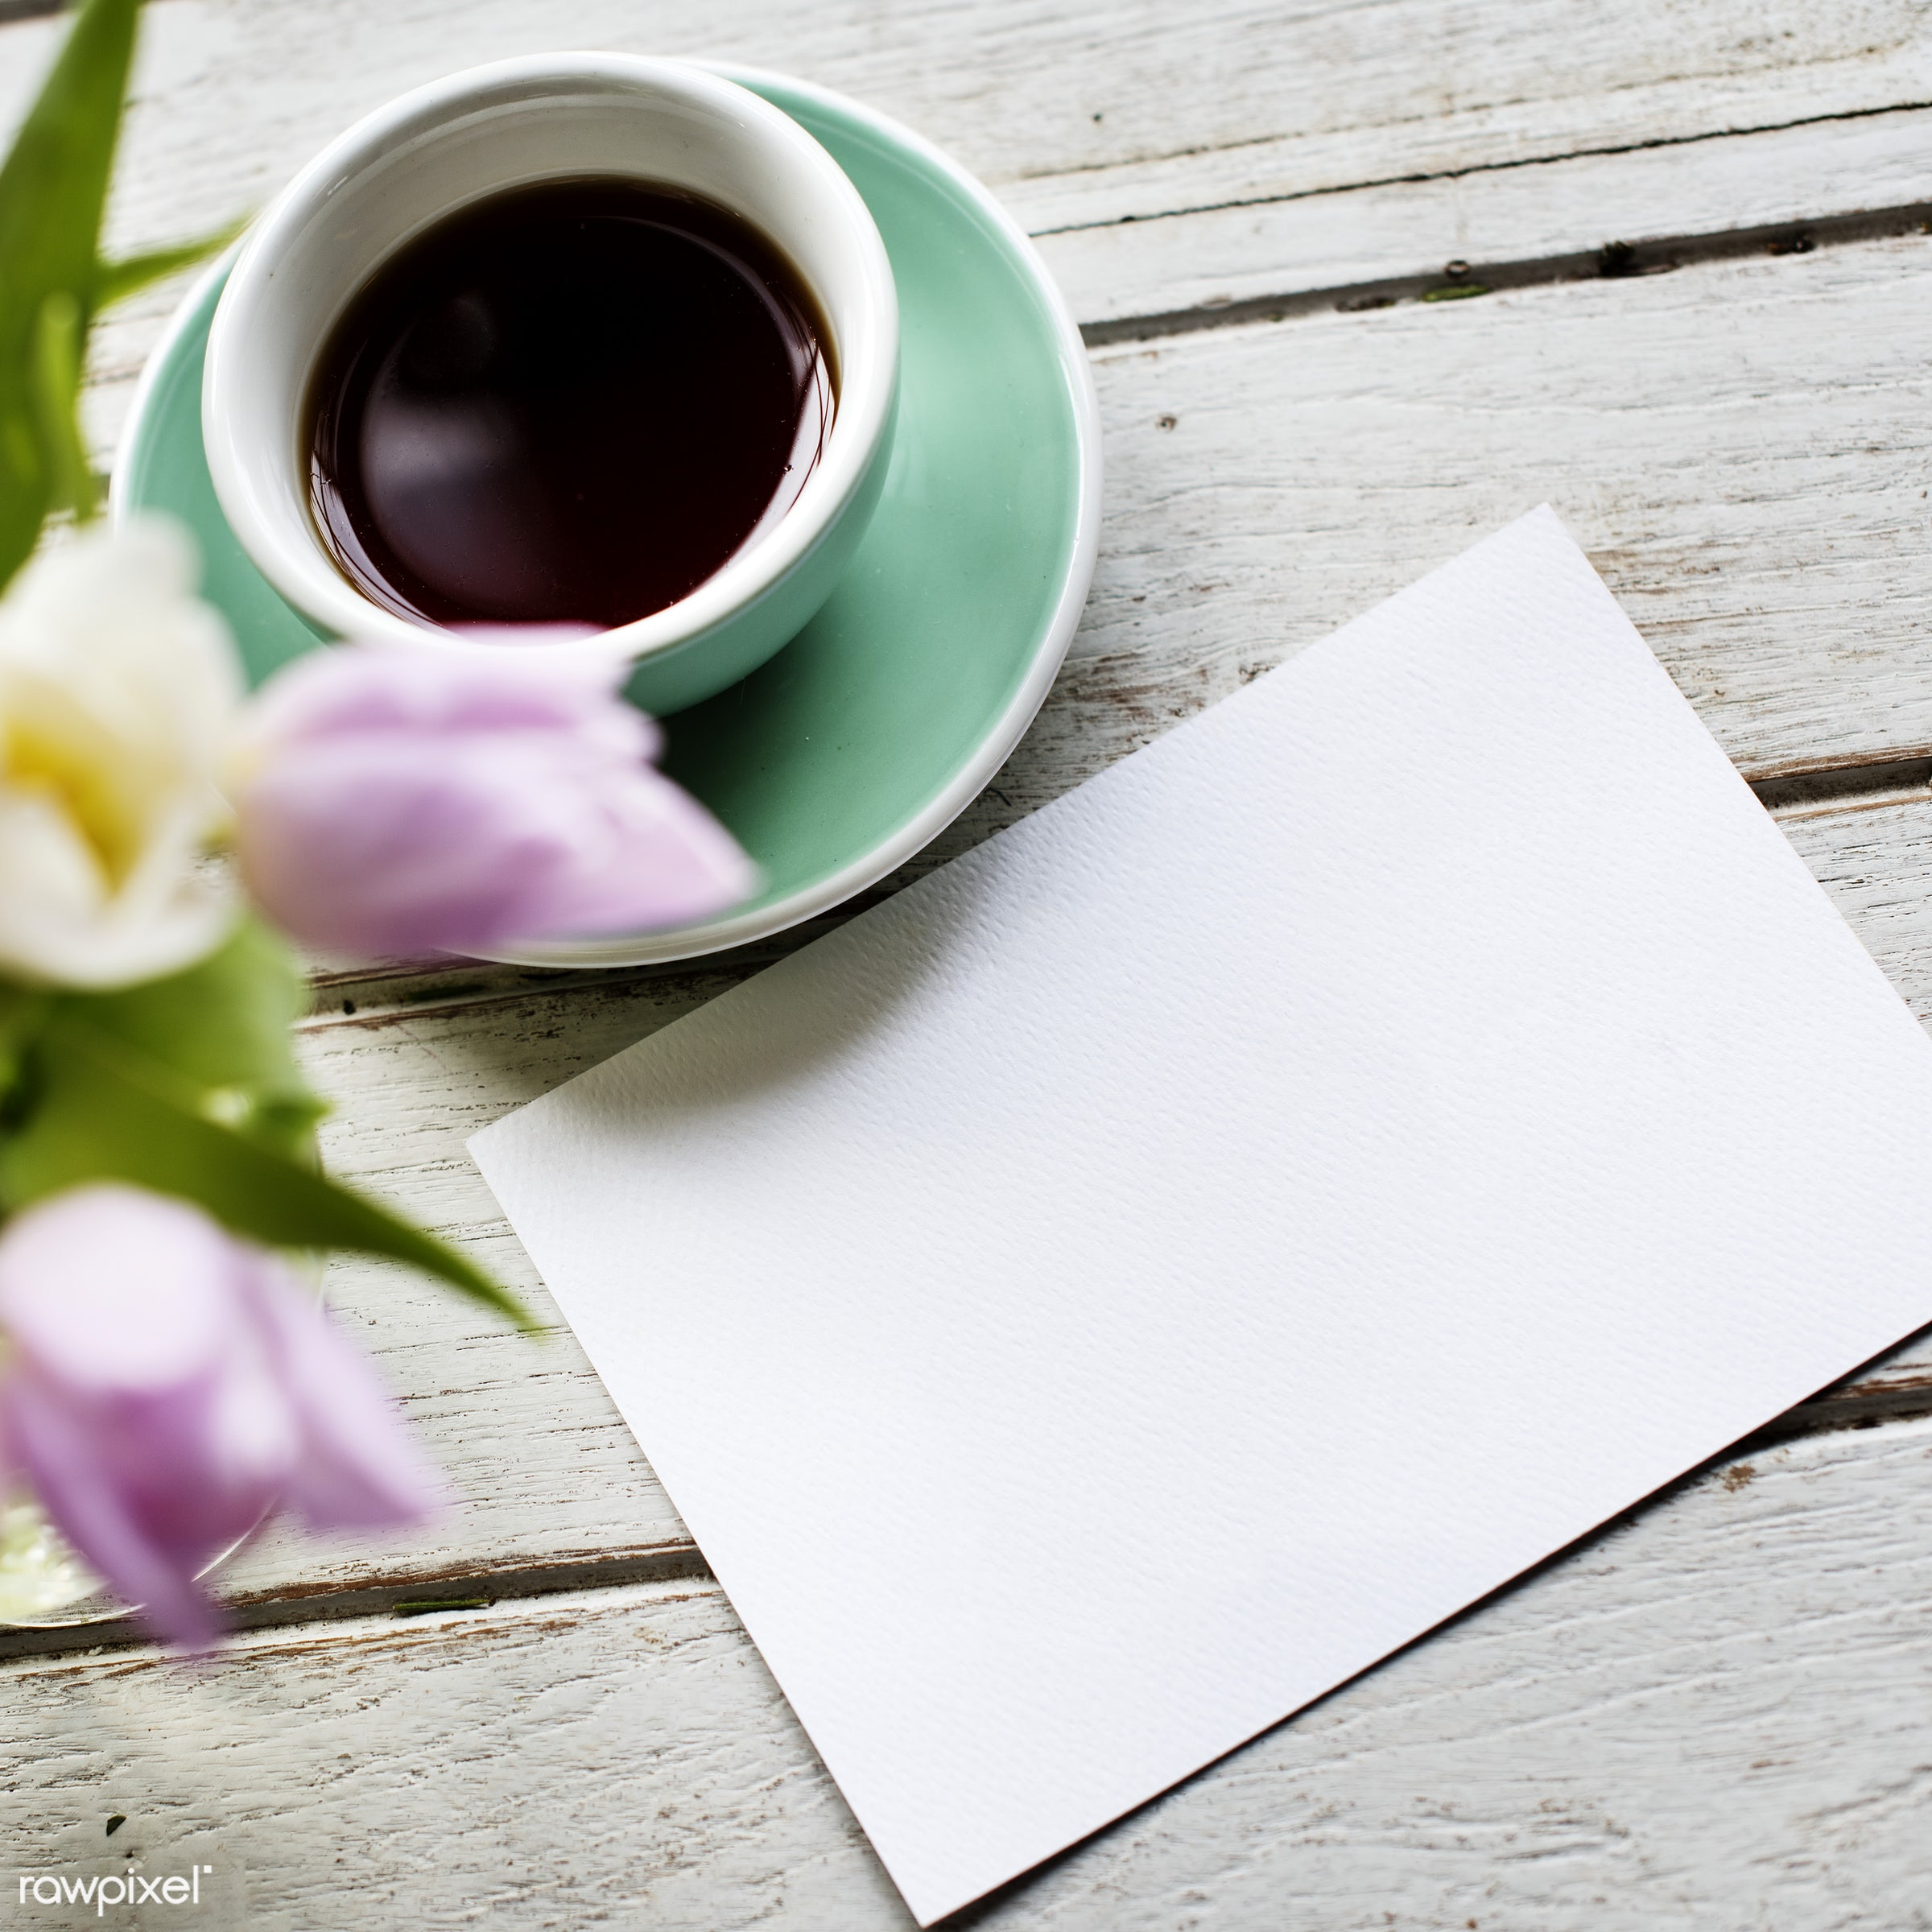 Blank note with a cup of coffee - note, paper, card, cup, coffee, aerial view, drink, flower, table, desk, objects, blank,...